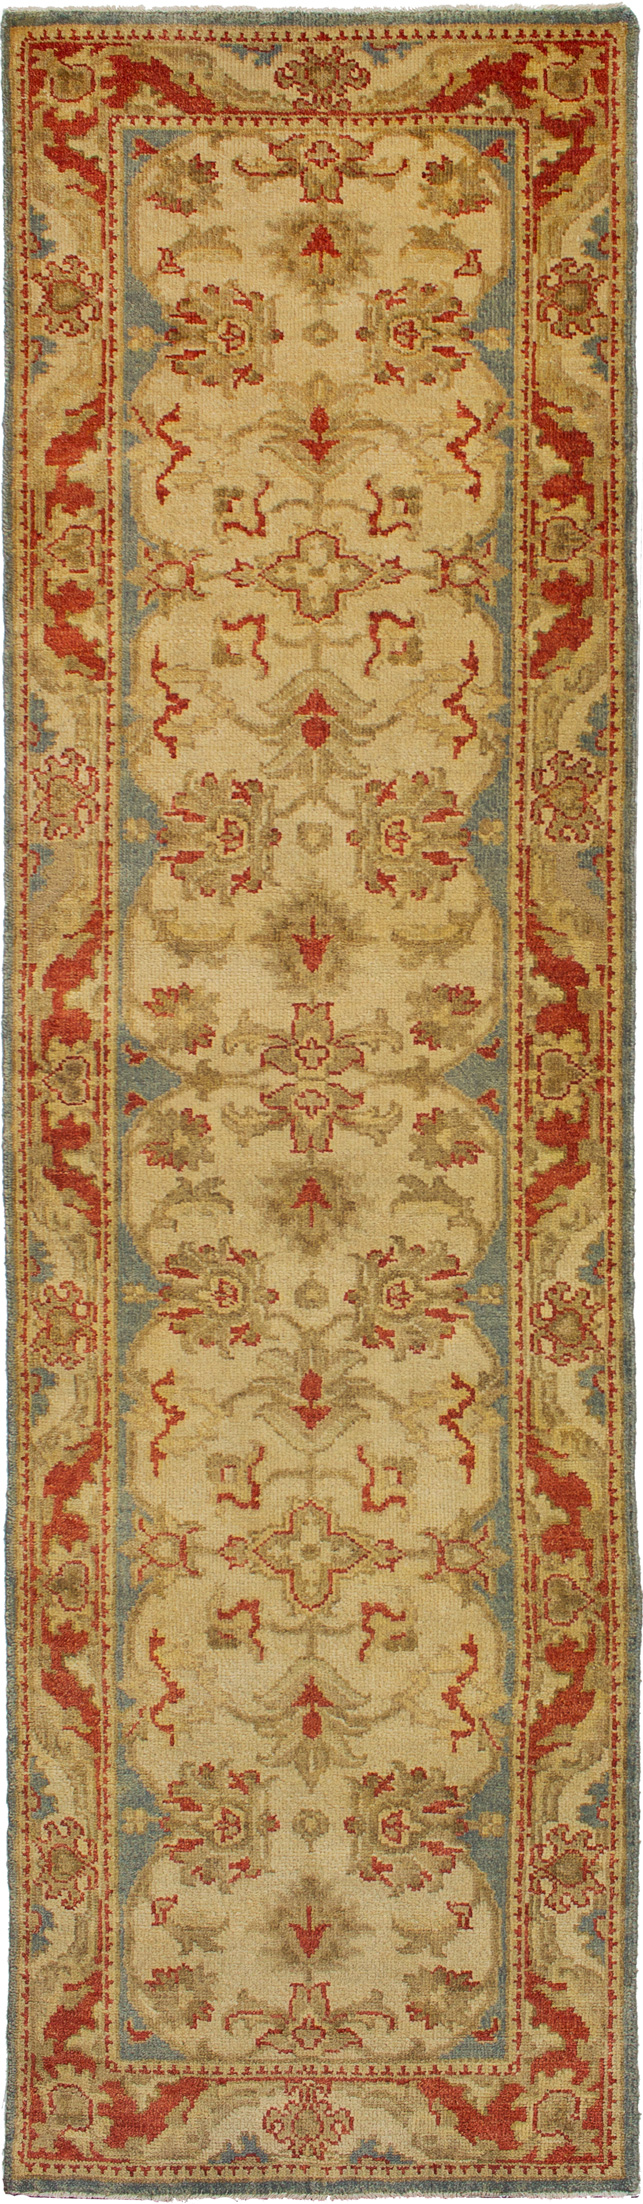 "Hand-knotted Royal Ushak Cream Wool Rug 2'9"" x 9'11"" Size: 2'9"" x 9'11"""